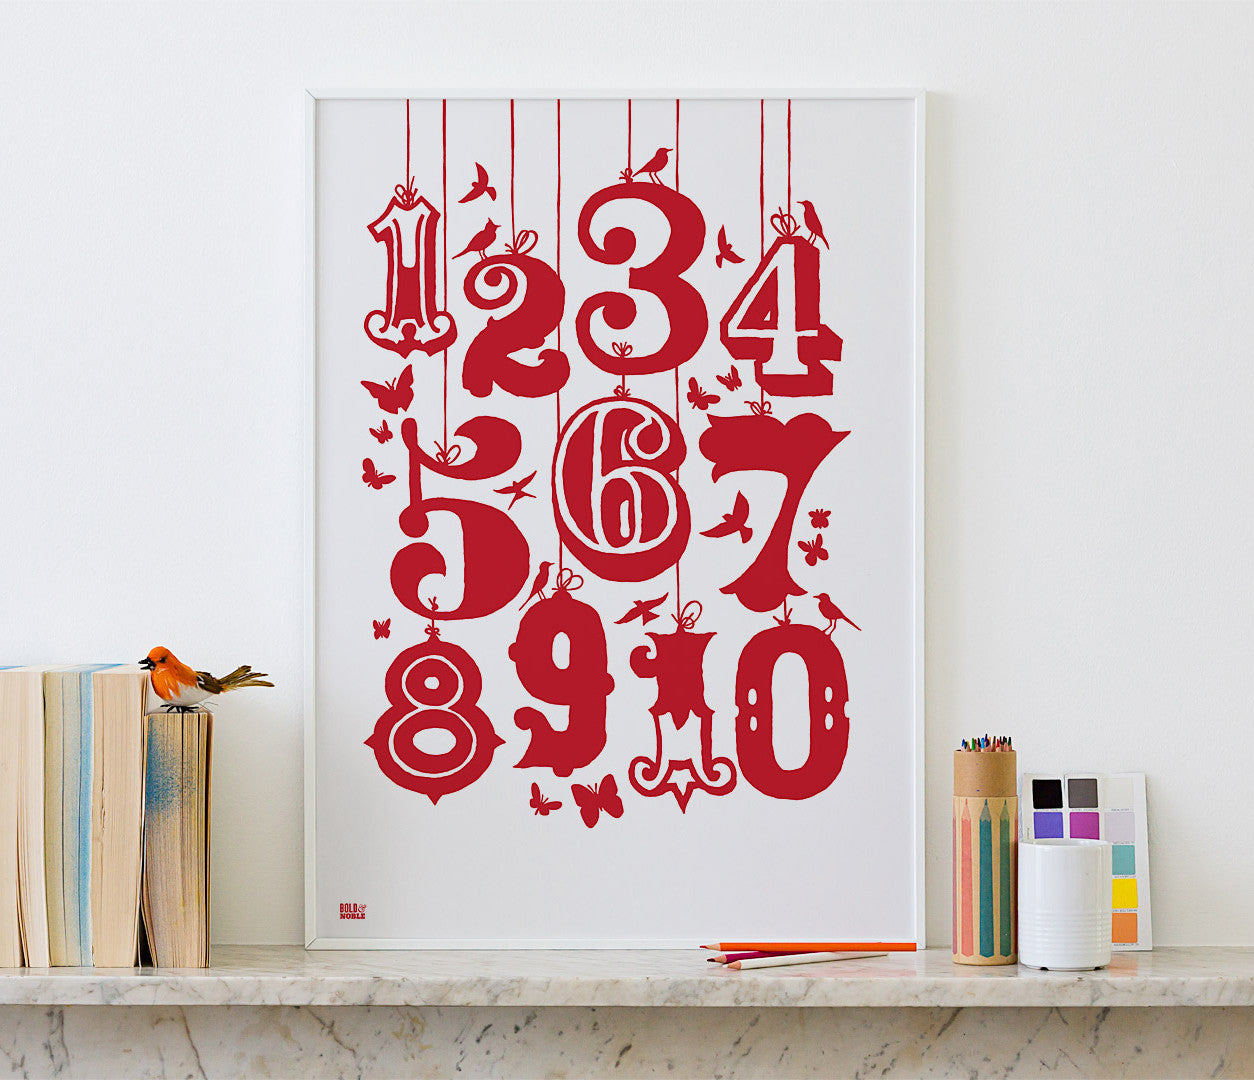 Pictures and wall art, screen printed 1-10 Kids poster in poppy red